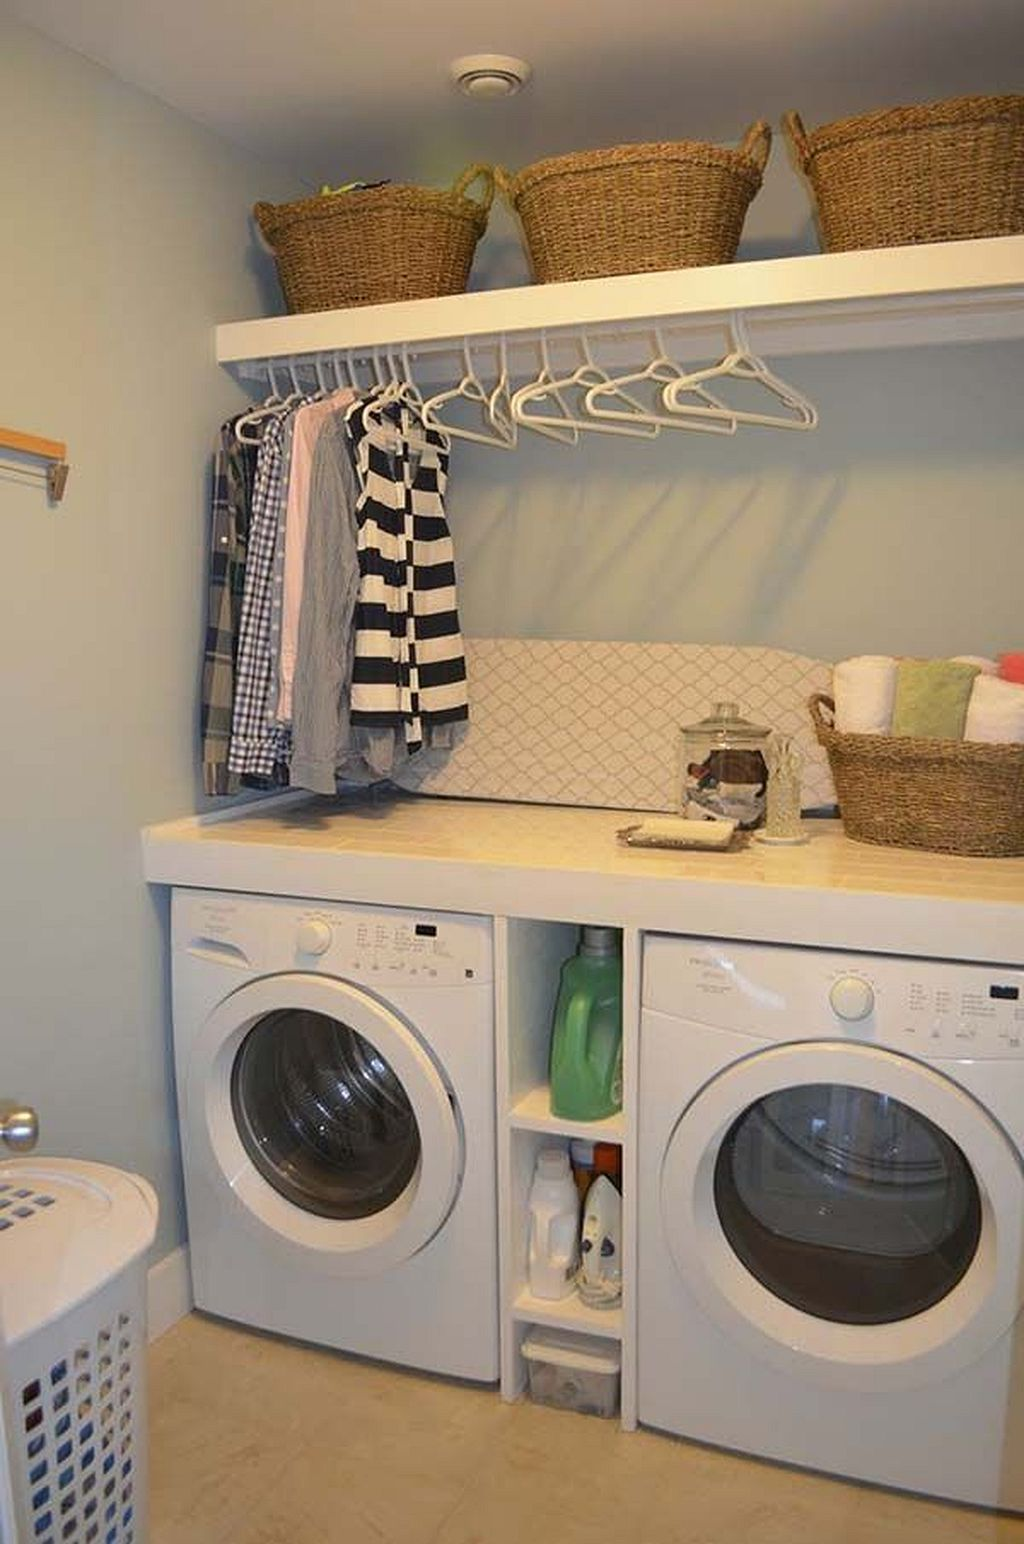 64 Tiny E Laundry Room Storage Ideas